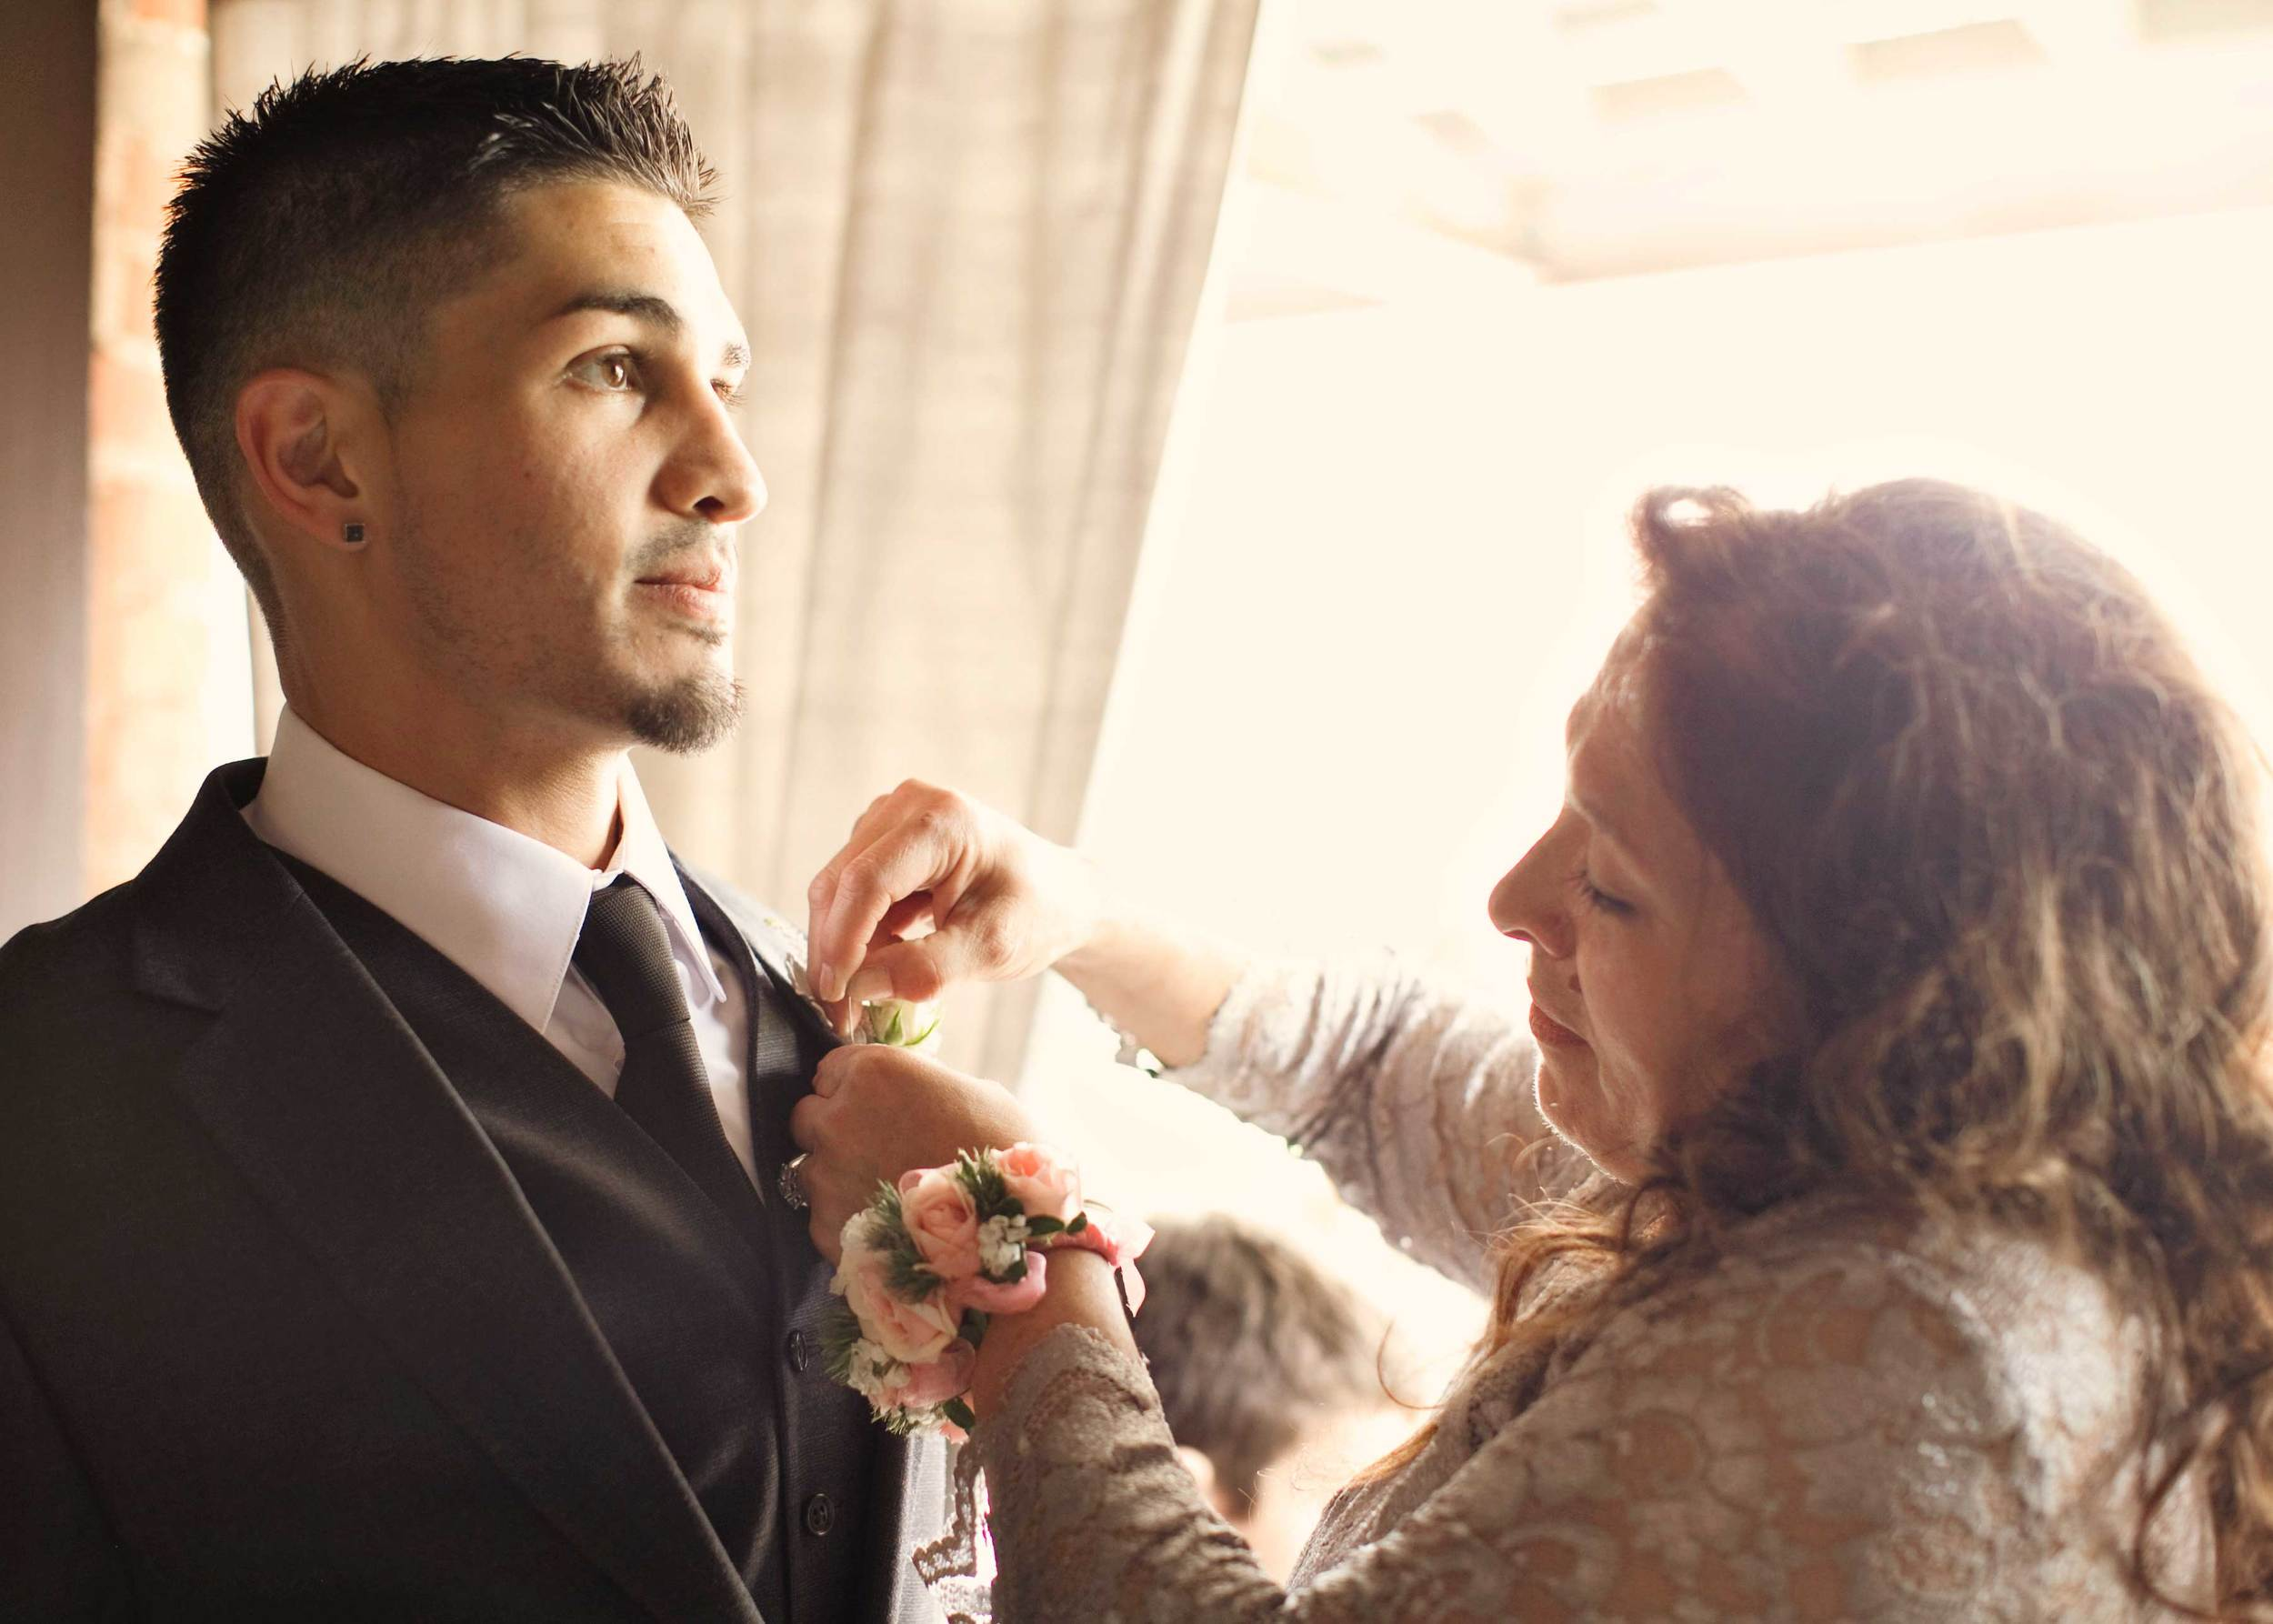 4. OUR GROOM FEELING THE GRAVITY OF THE DAY WHILE MOM PINS ON HIS BOUTONNIERE.